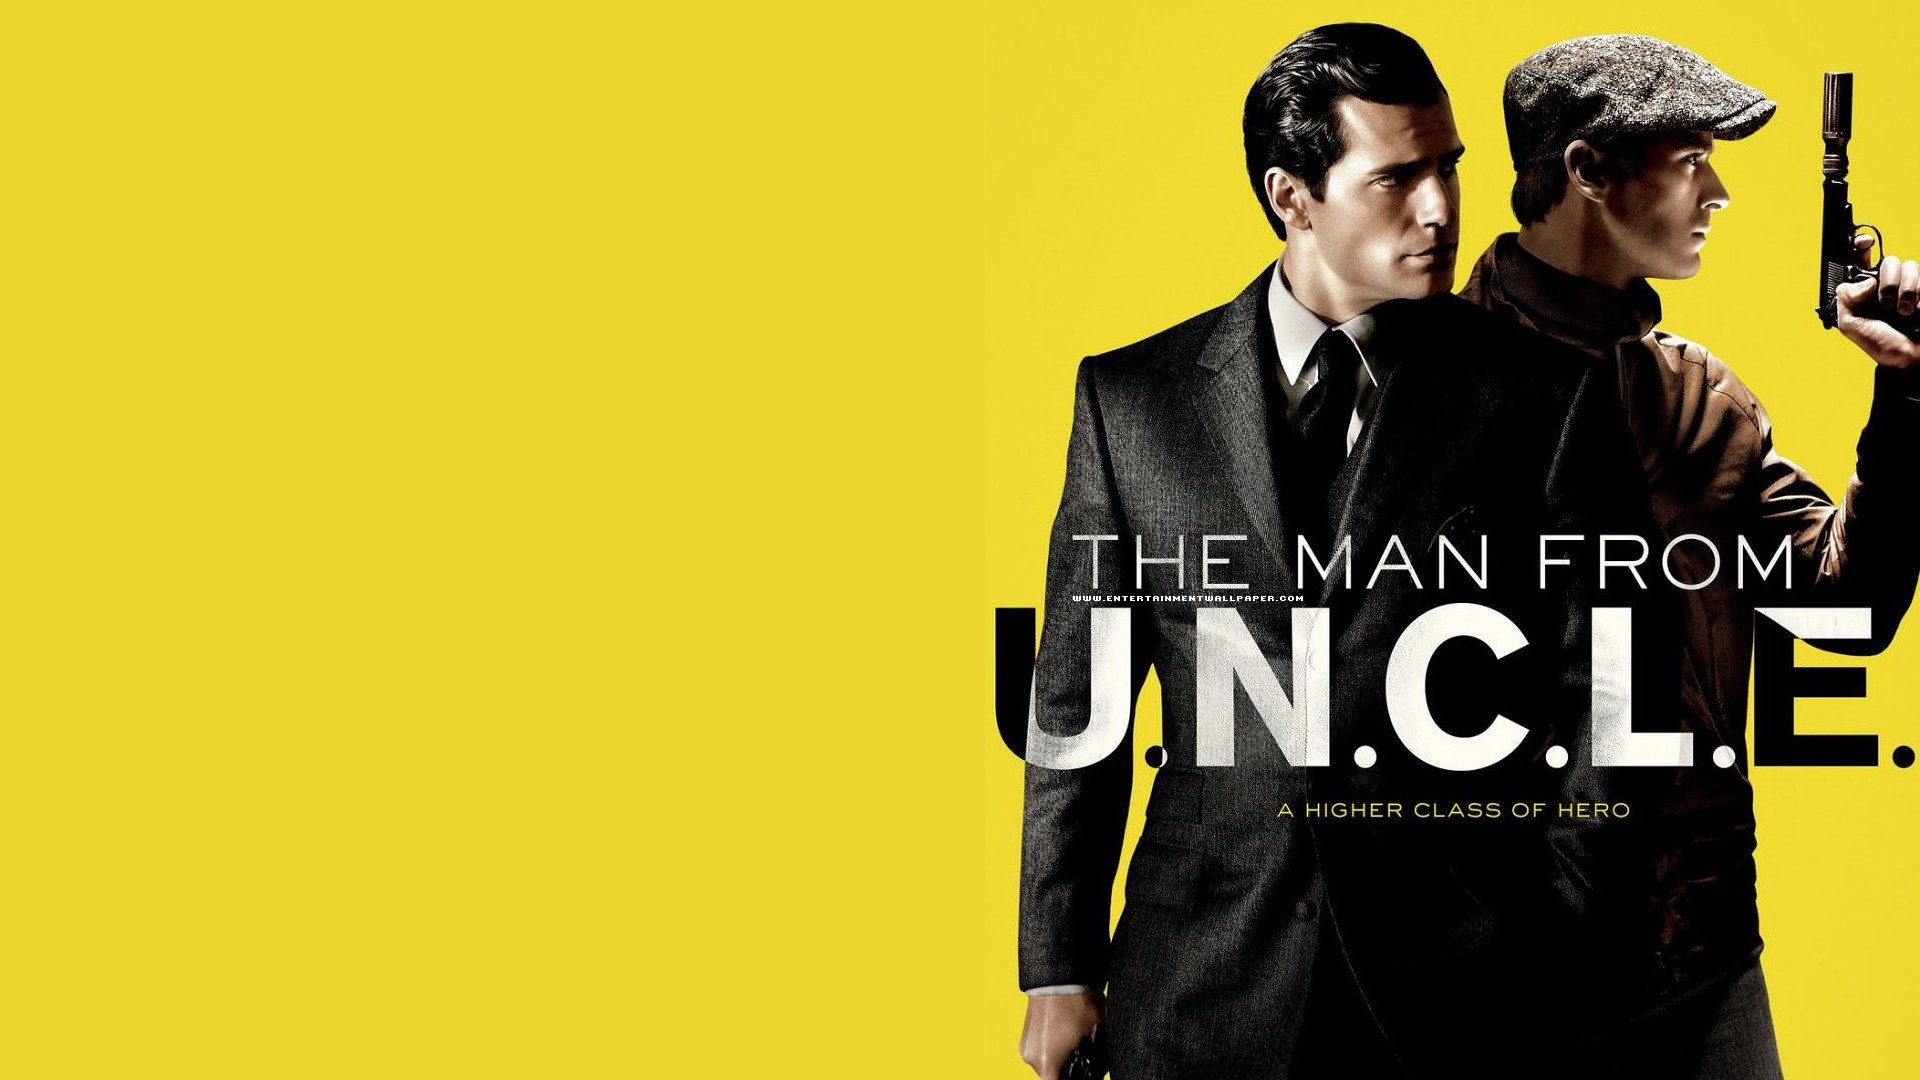 The Man from UNCLE Wallpaper   10045658 1920x1080 1920x1080